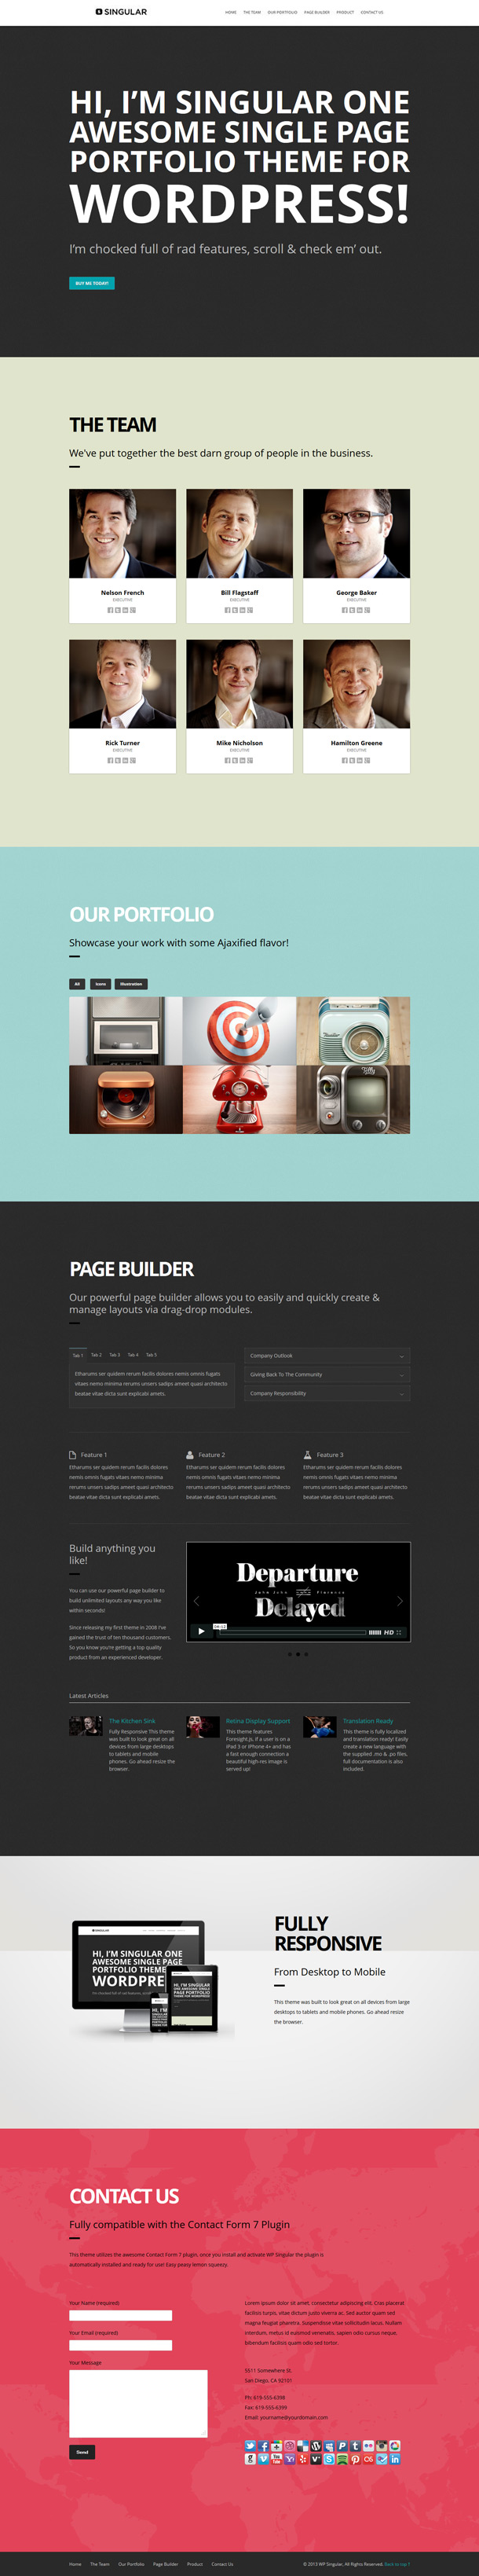 WPSingular-Wordpress-Template